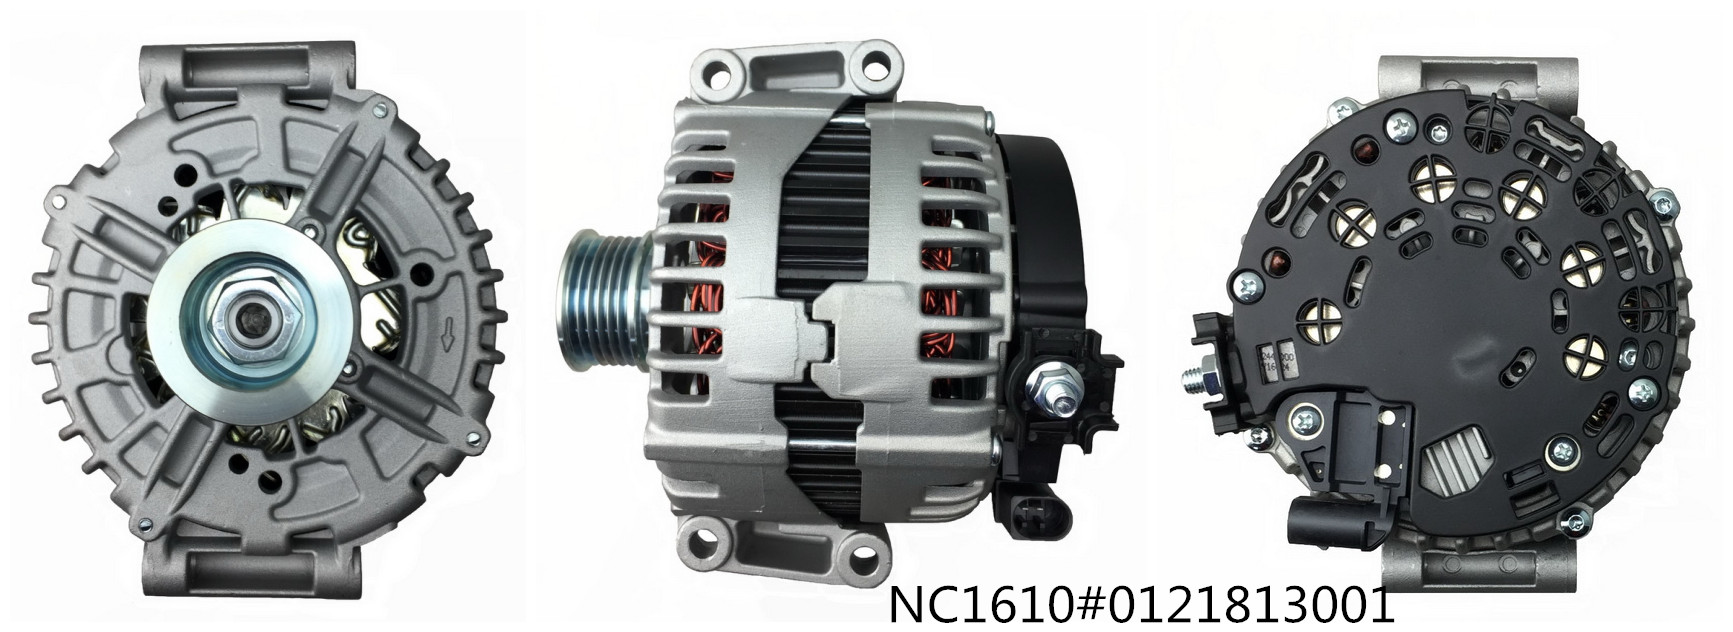 Mercedes-Benz Alternator NC1610 ( 12V 220A, 0121813001)